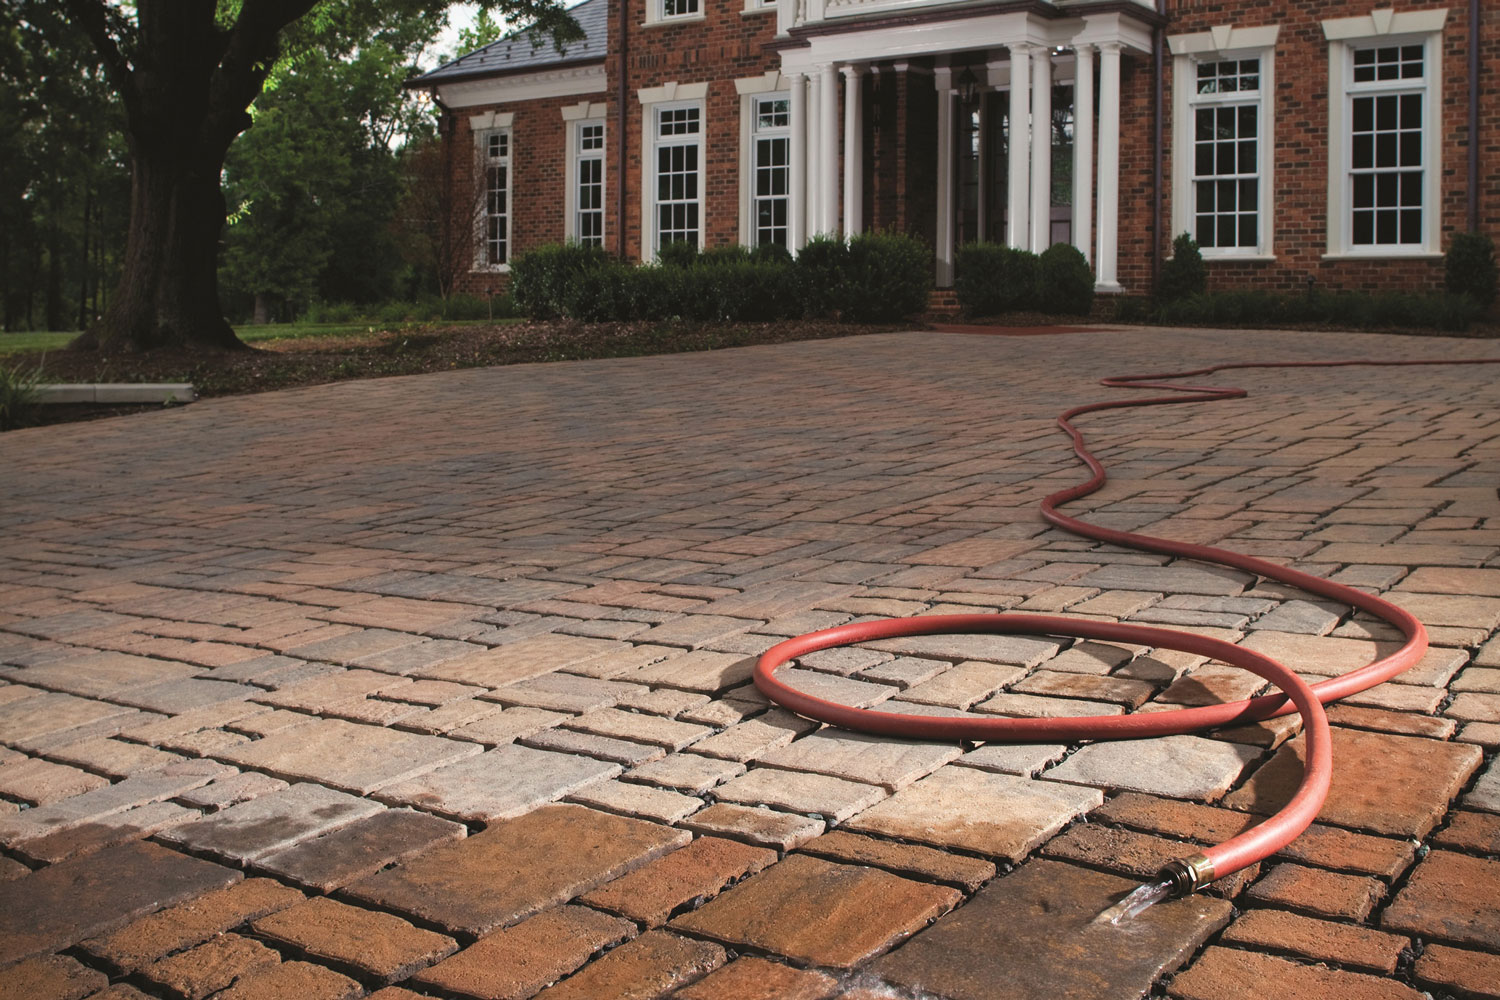 Installation of permeable pavers in subdivisions